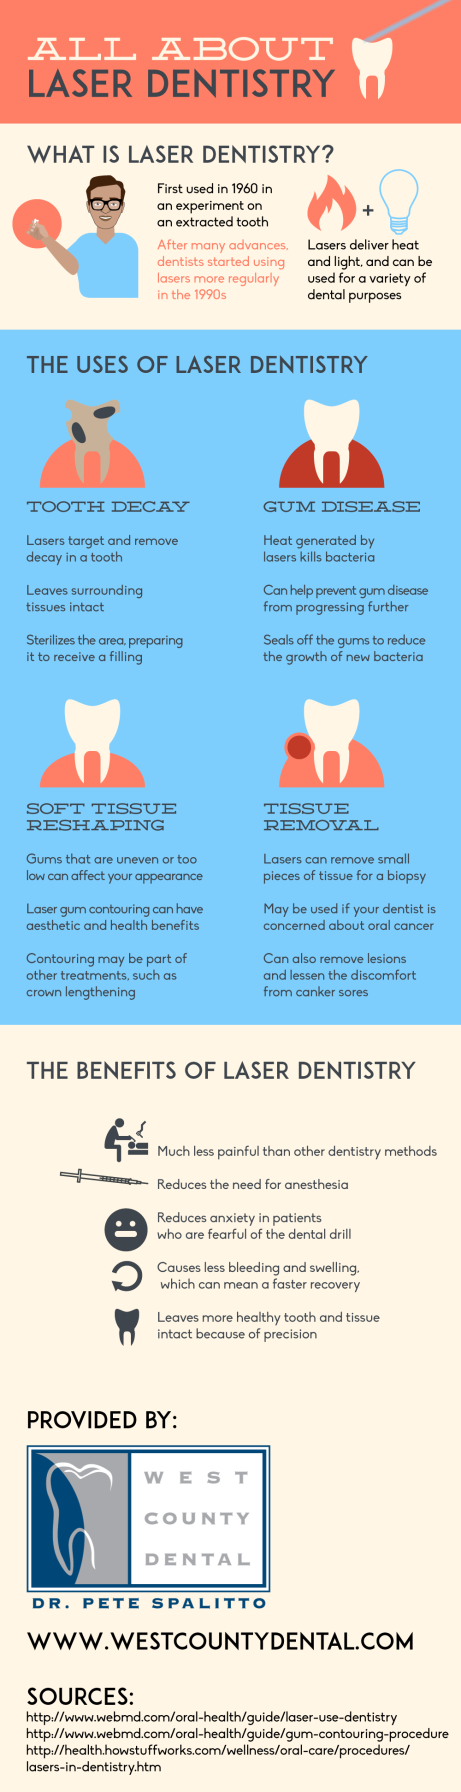 All About Laser Dentistry [INFOGRAPHIC]